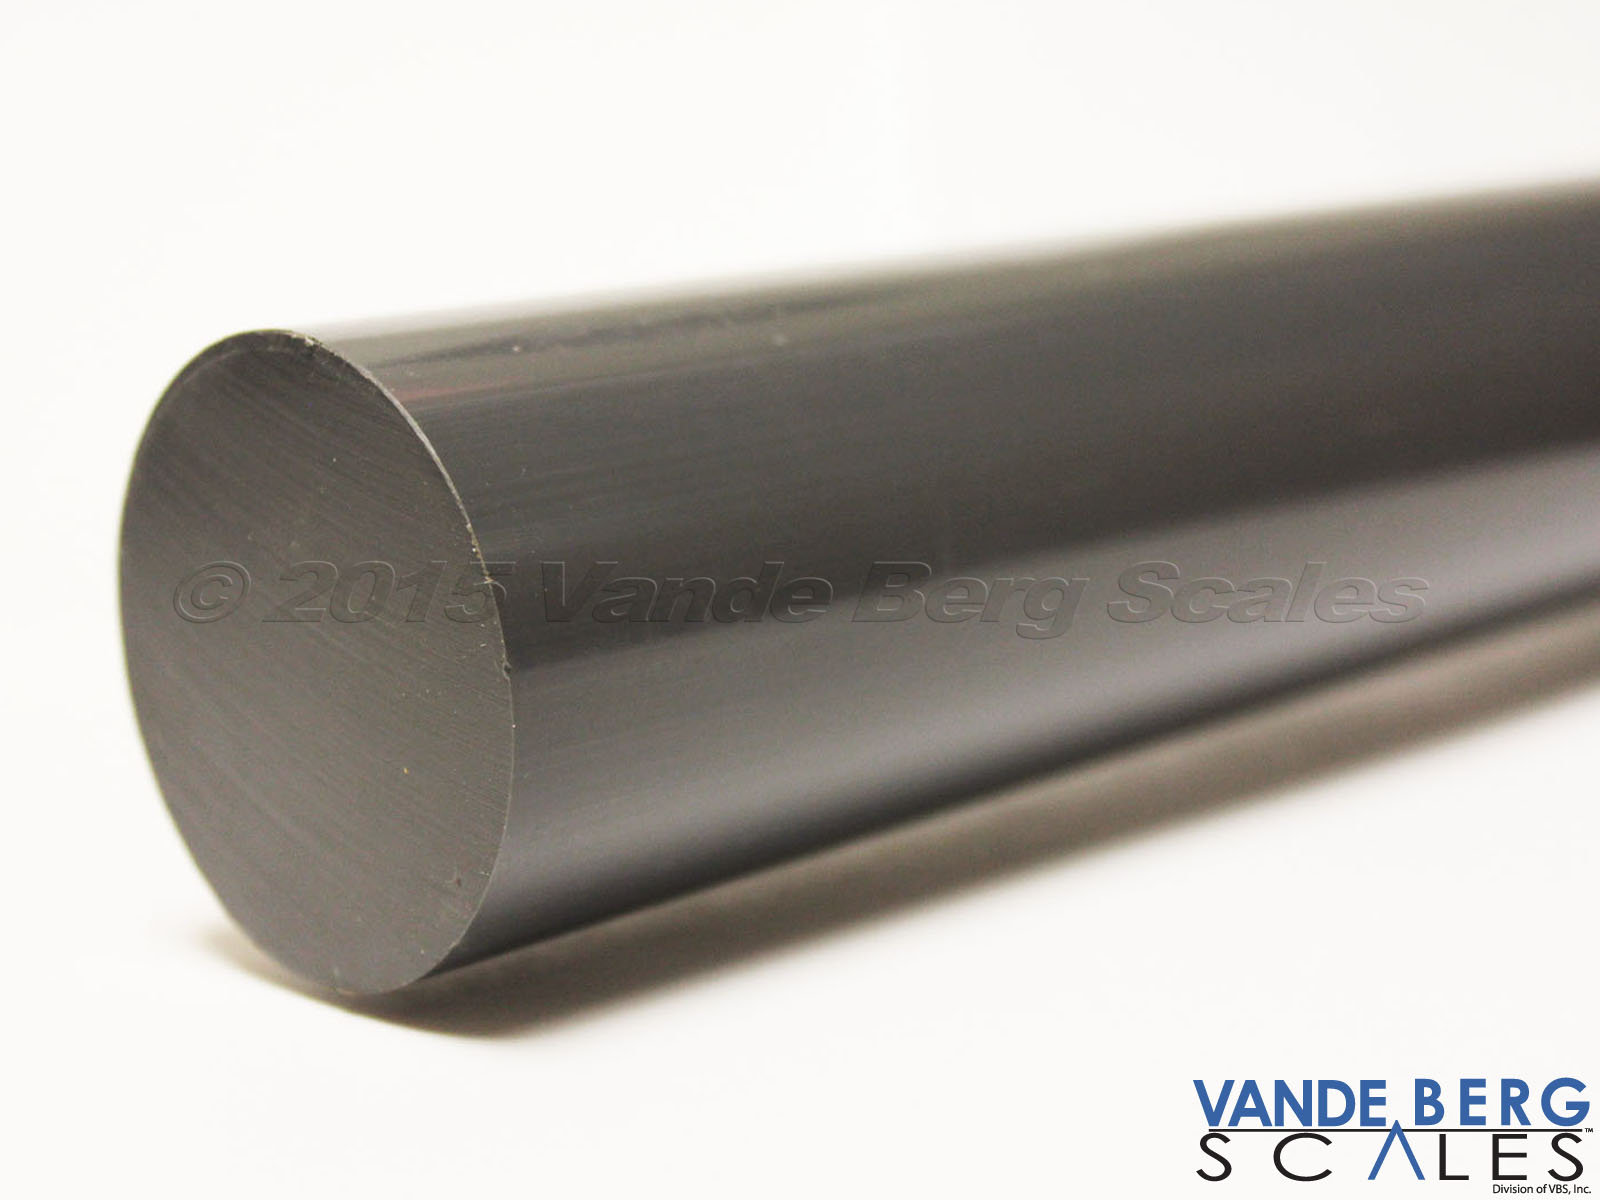 Solid plastic rollers are milled out on each end to allow for the bearing inserts.